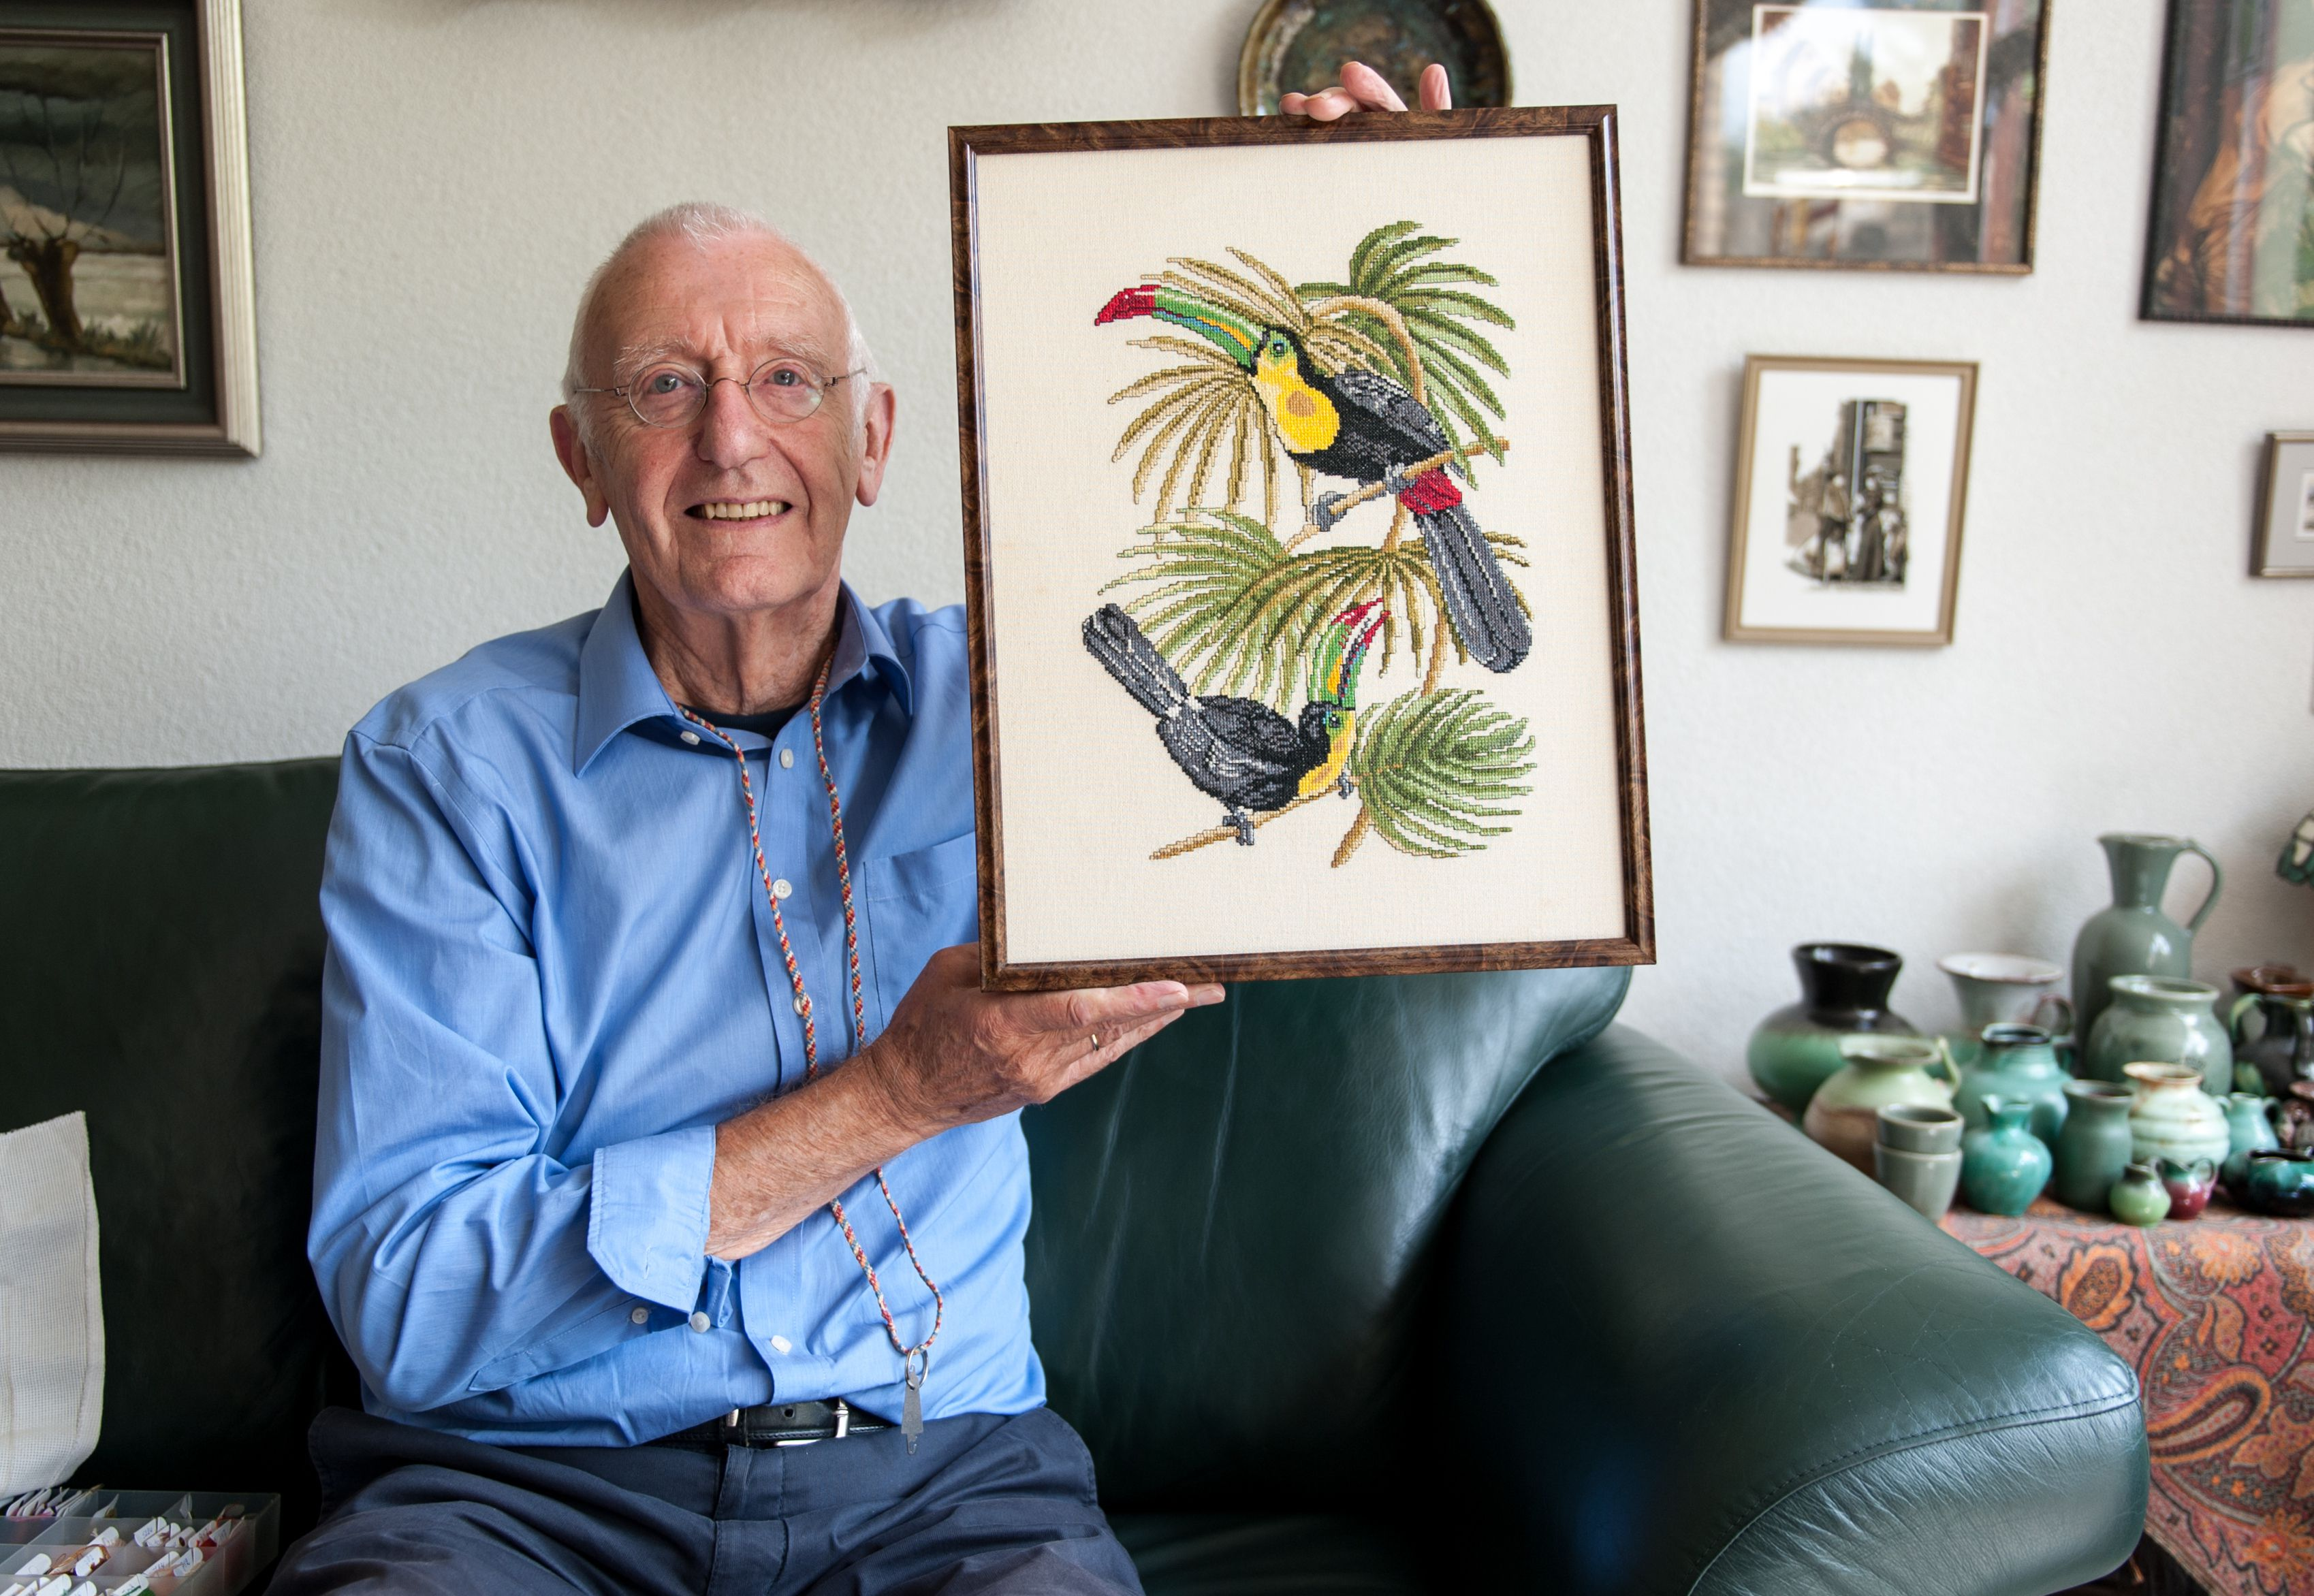 Senior man proudly showing his embroidered artwork